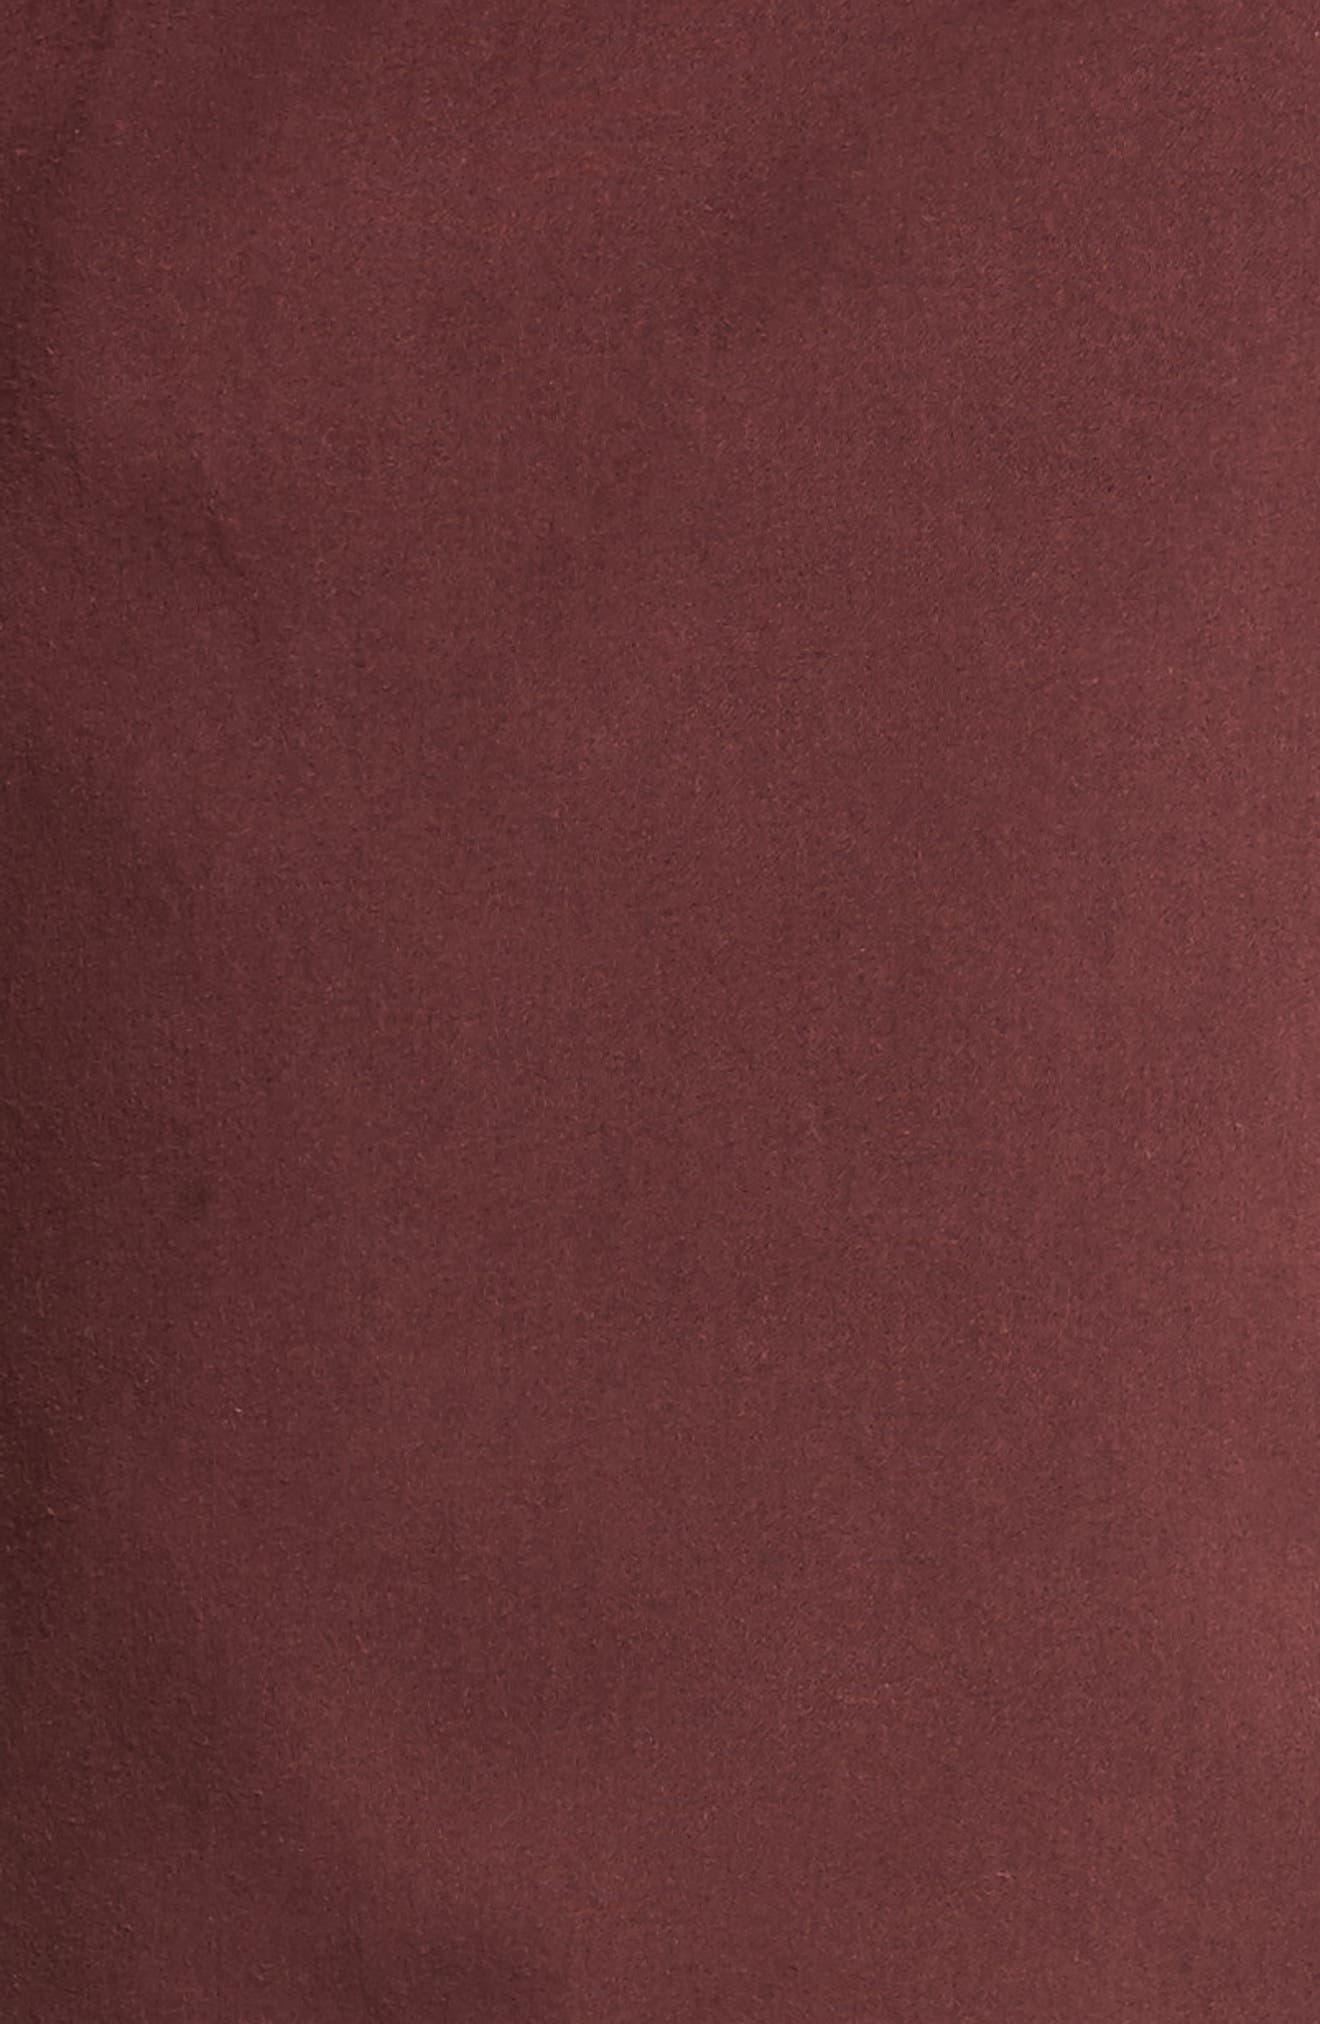 Charisma Relaxed Fit Pants,                             Alternate thumbnail 5, color,                             BORDEAUX TWILL